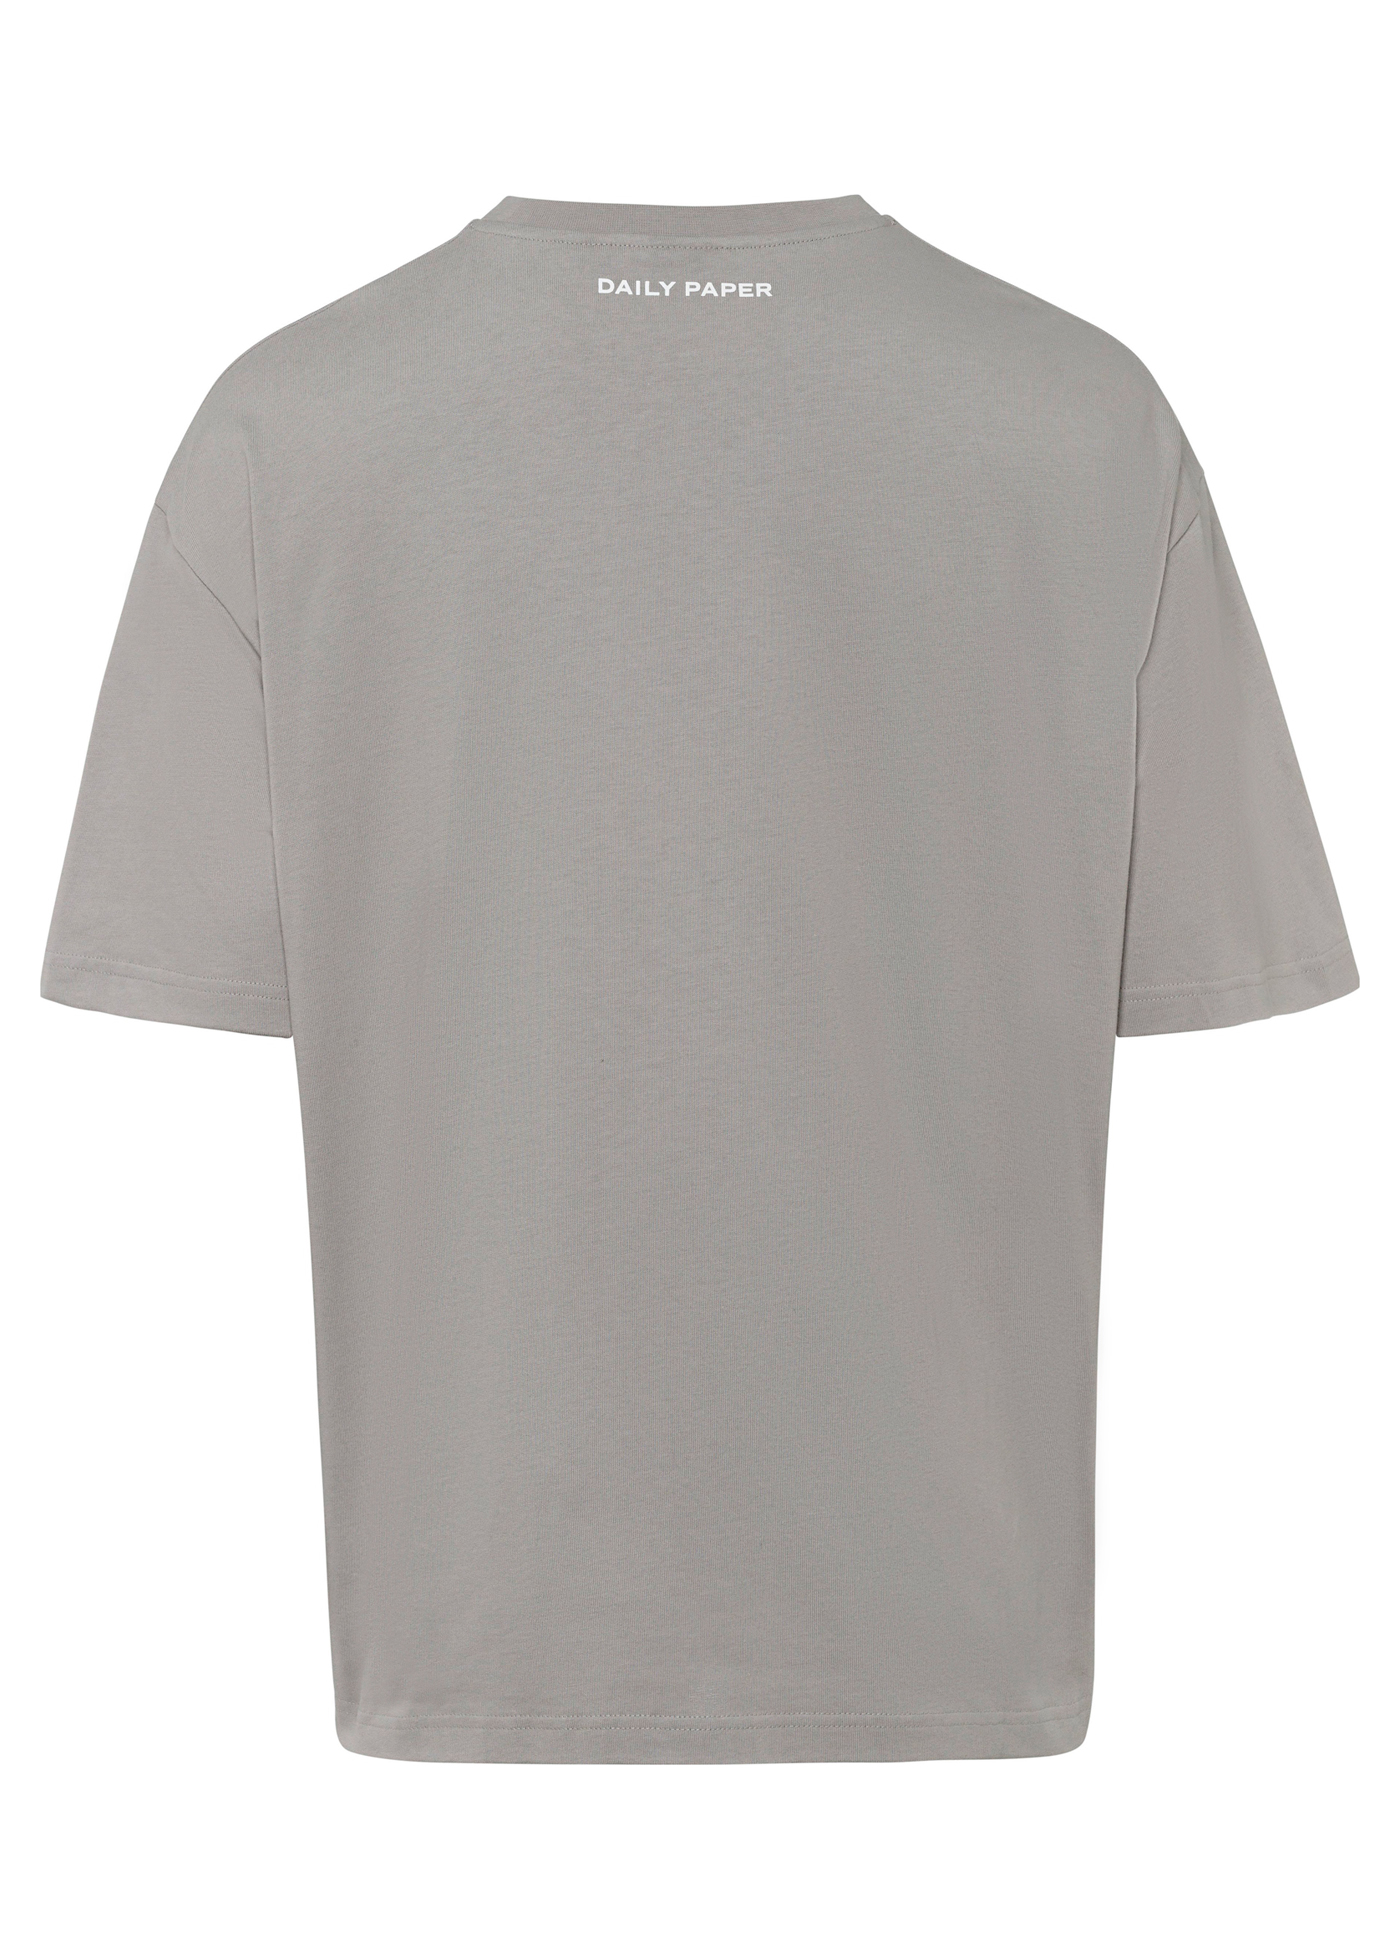 leval ss t-shirt image number 1